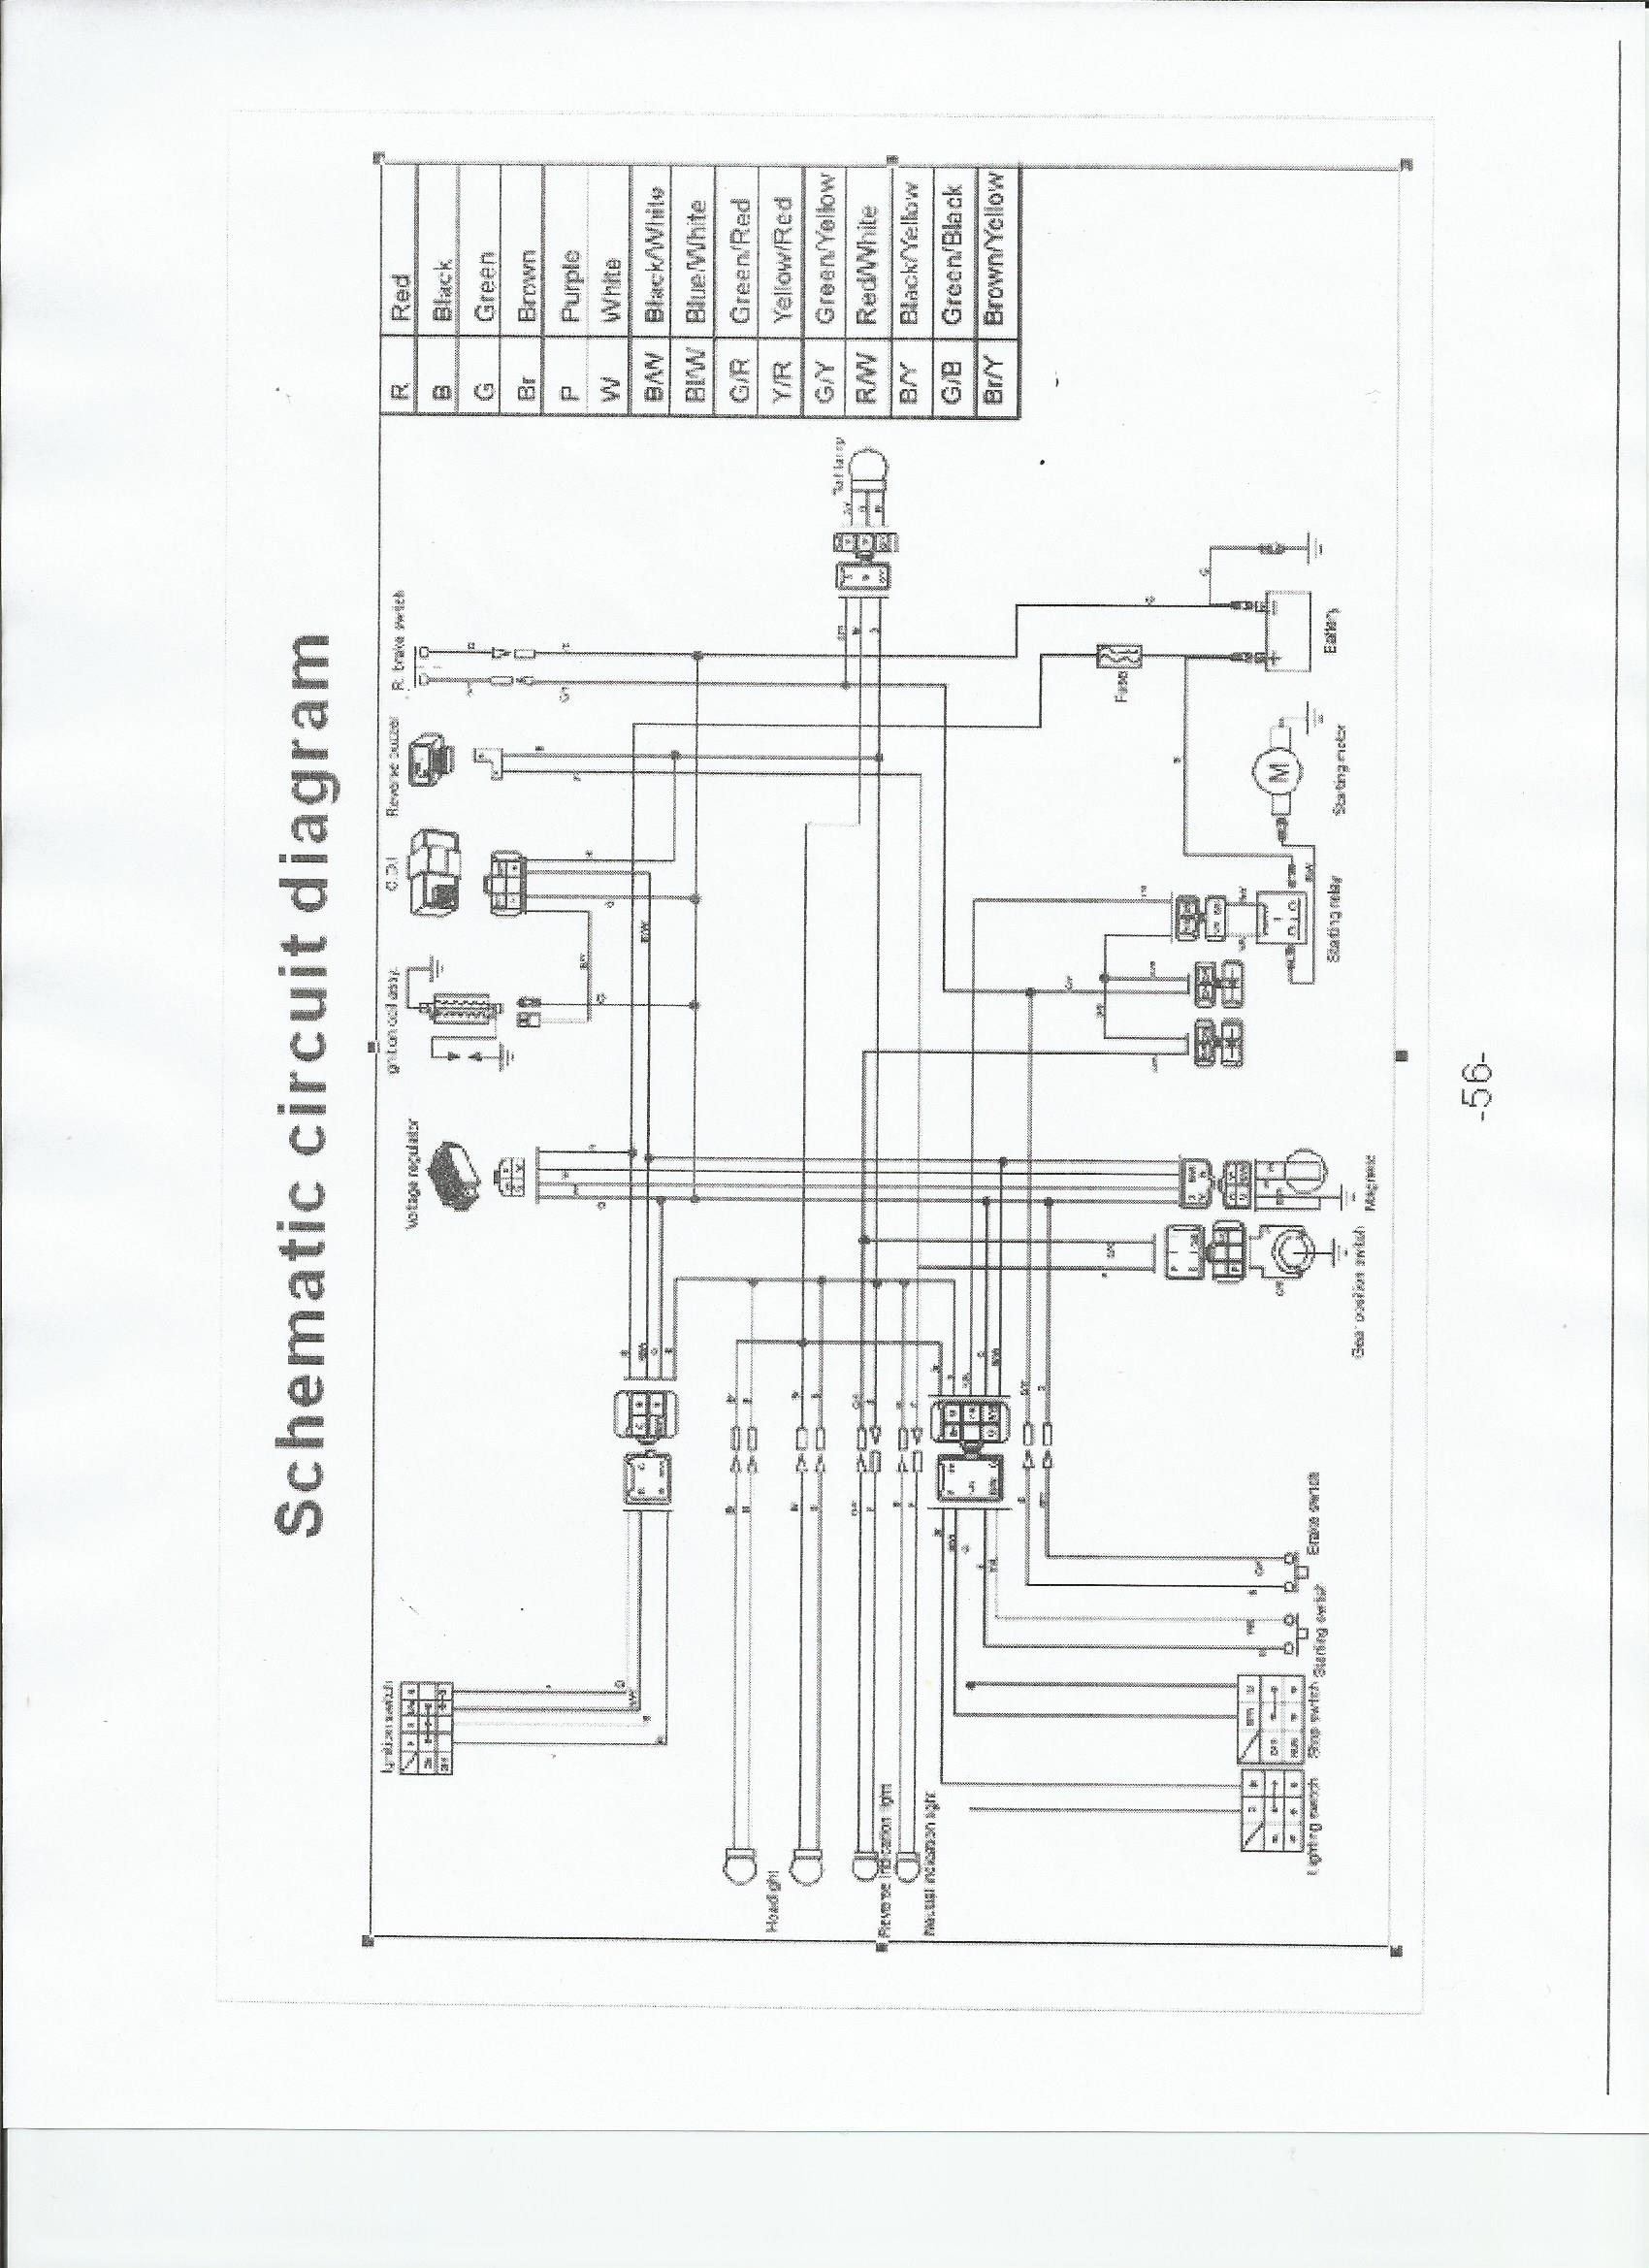 Taotao 250 Wiring Diagram Get Free Image About Receptacles Electrical Diagrams Atv Automotive